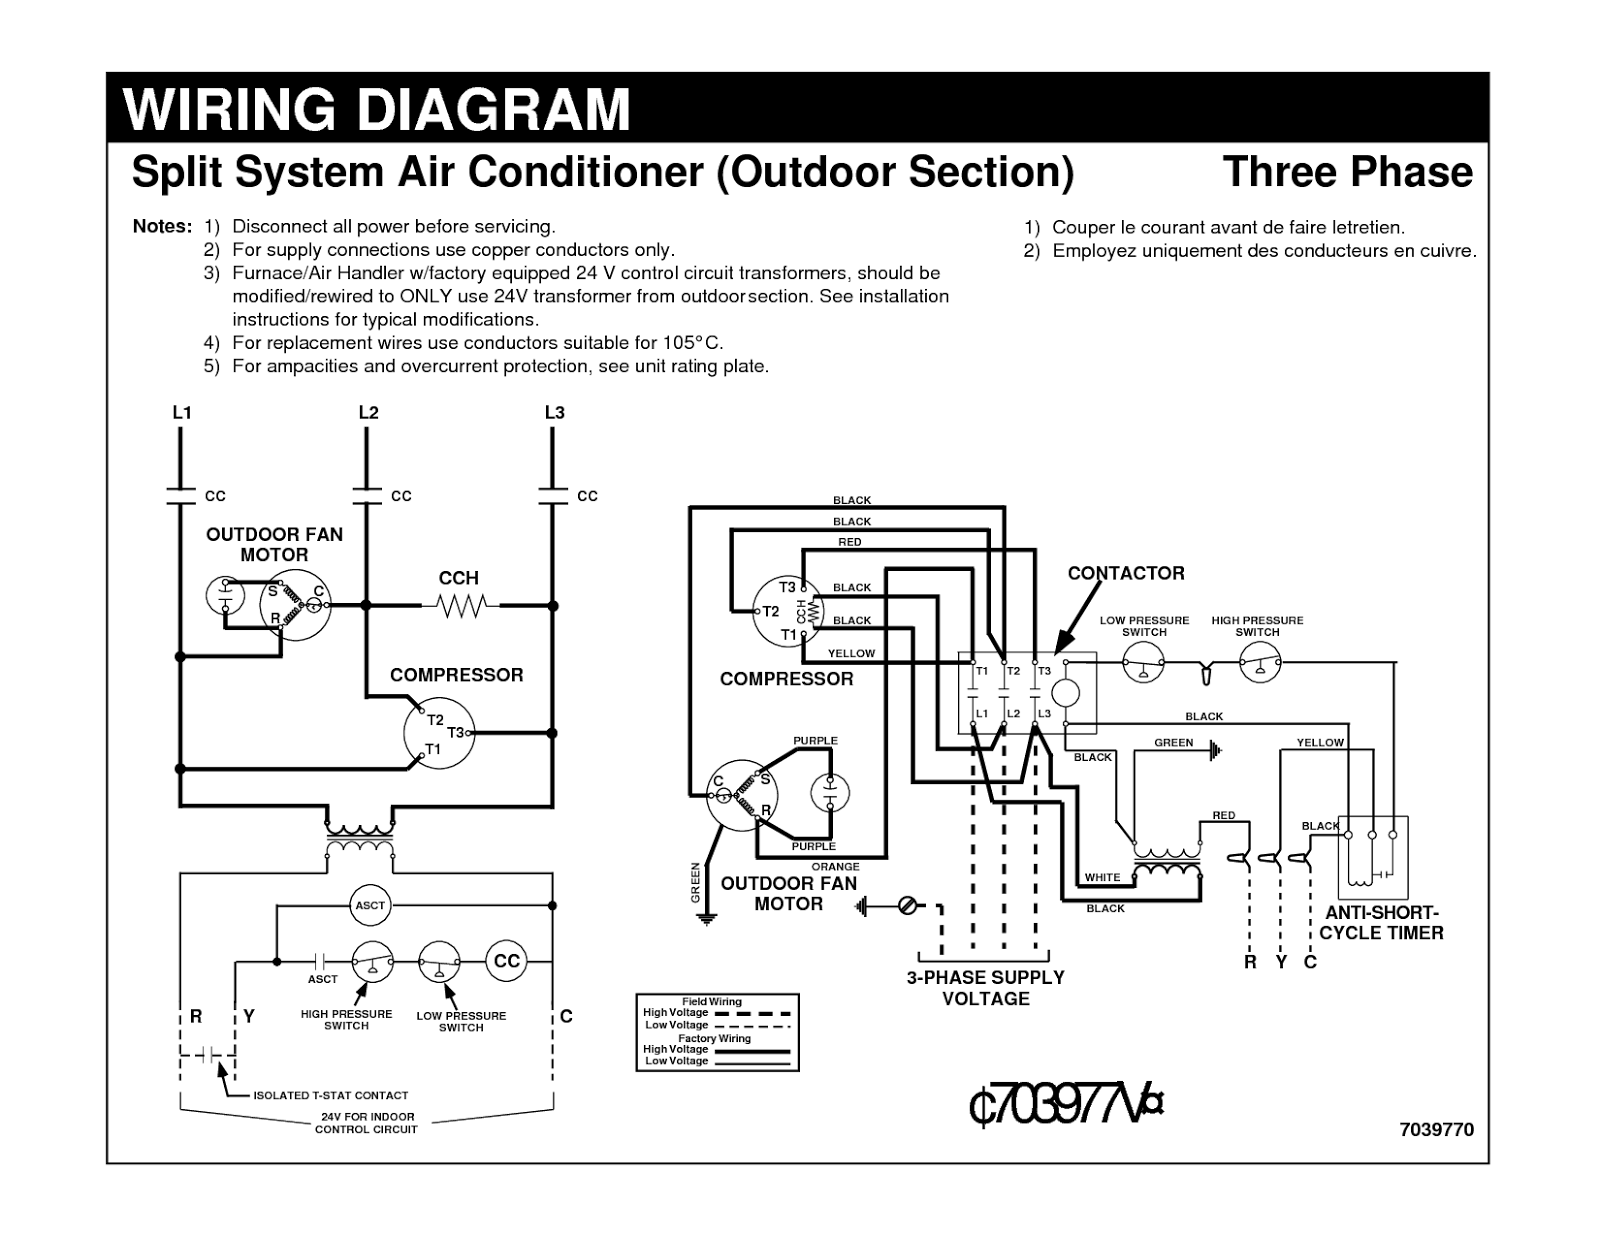 ac co wiring diagram wiring diagram will be a thing u2022 rh exploreandmore  co uk 110V Plug Wiring Diagram ac delco spark plug diagram